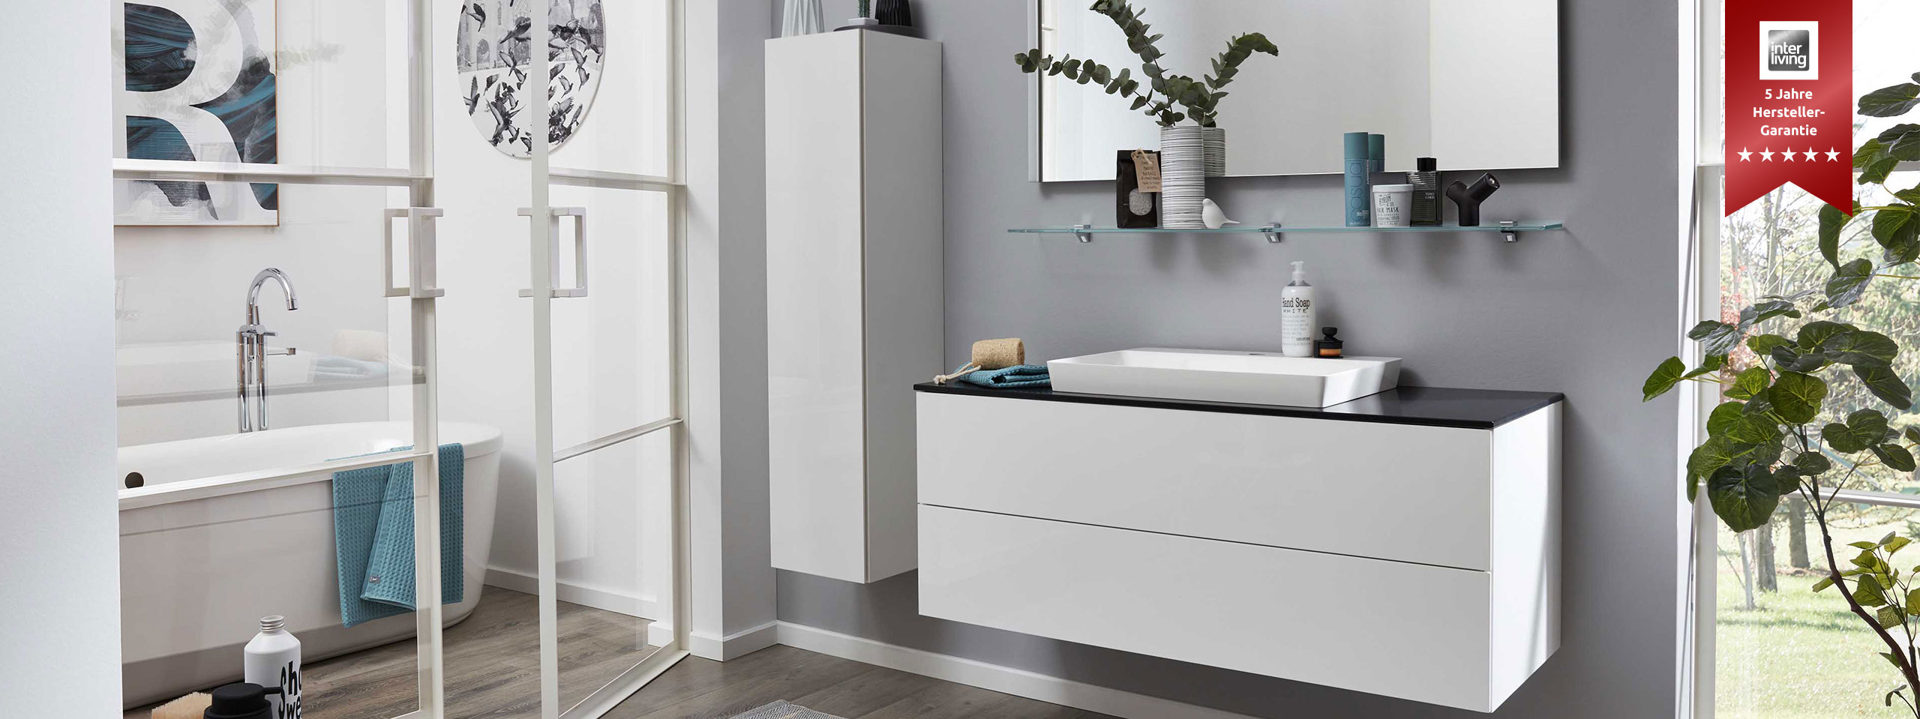 Interliving badezimmer serie 3701 HF Highlight 1